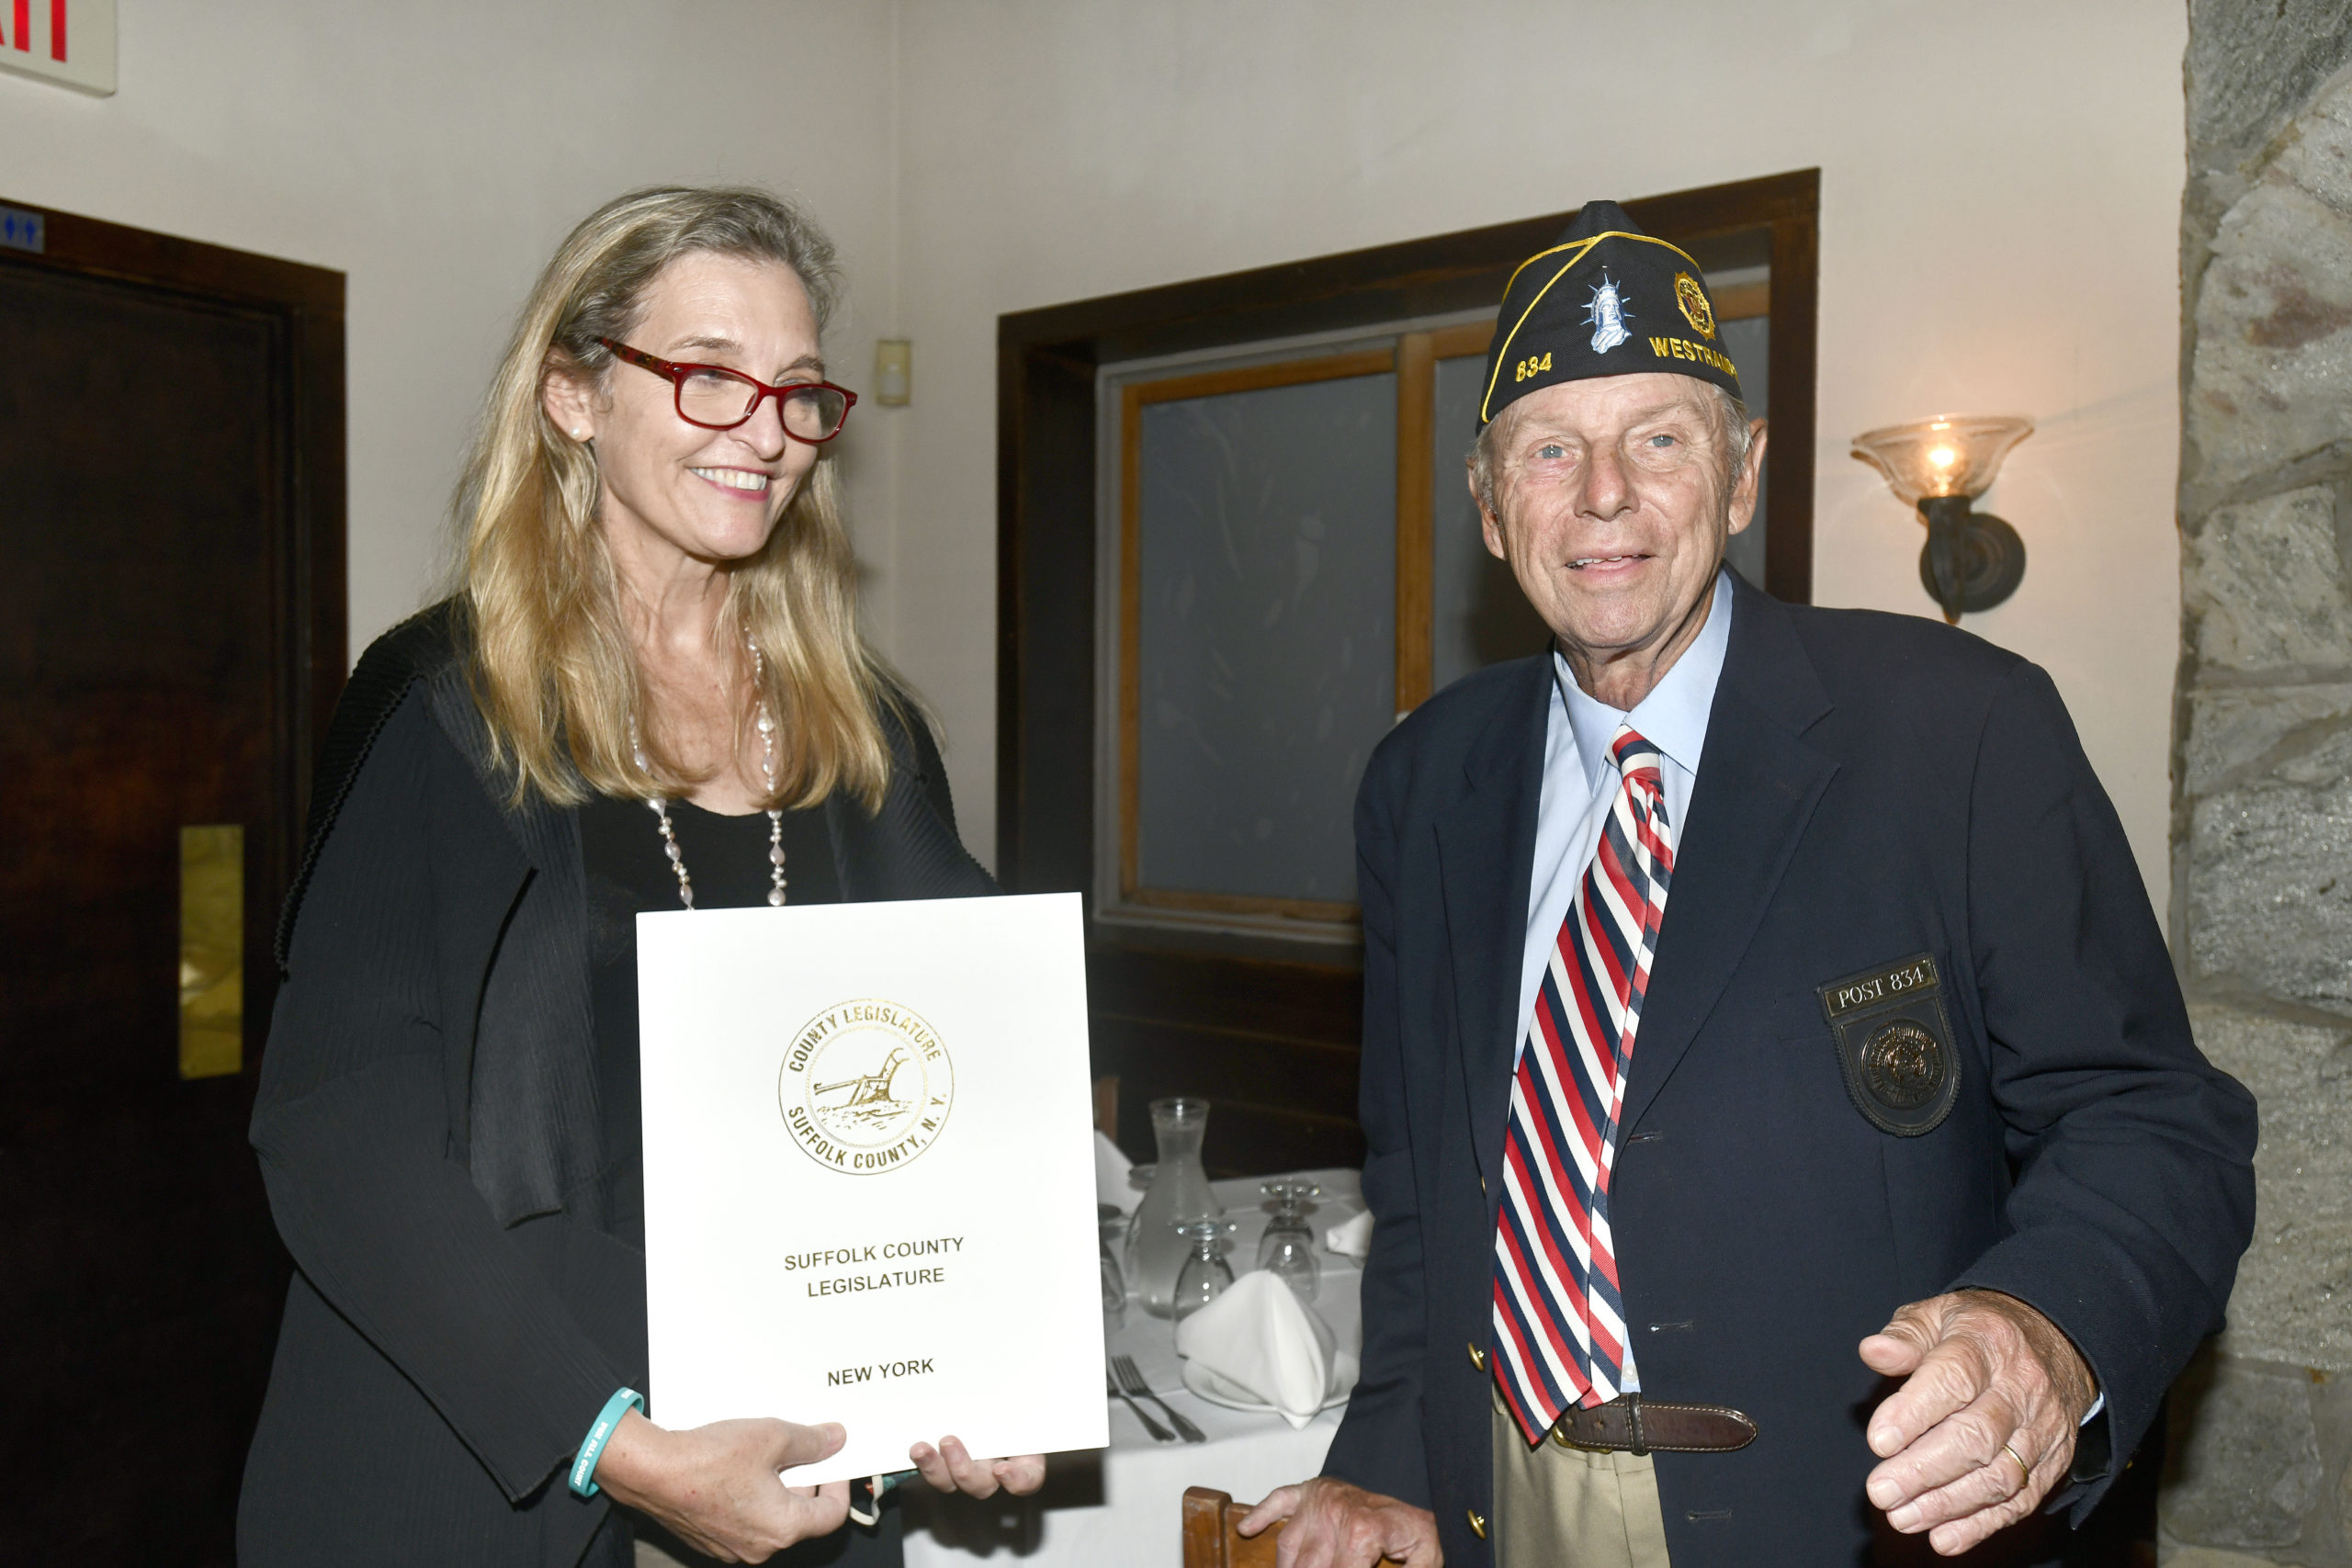 Irene Donohue from Suffolk County Legislator Bridget Fleming's office presents a proclamation to Tom Hadlock, Commander of the American Legion Arthur Ellis Hamm Post 834 in Westhampton, in honor of the post's 100th anniversary on Thursday, September 17, at the Baby Moon restaurant. DANA SHAW